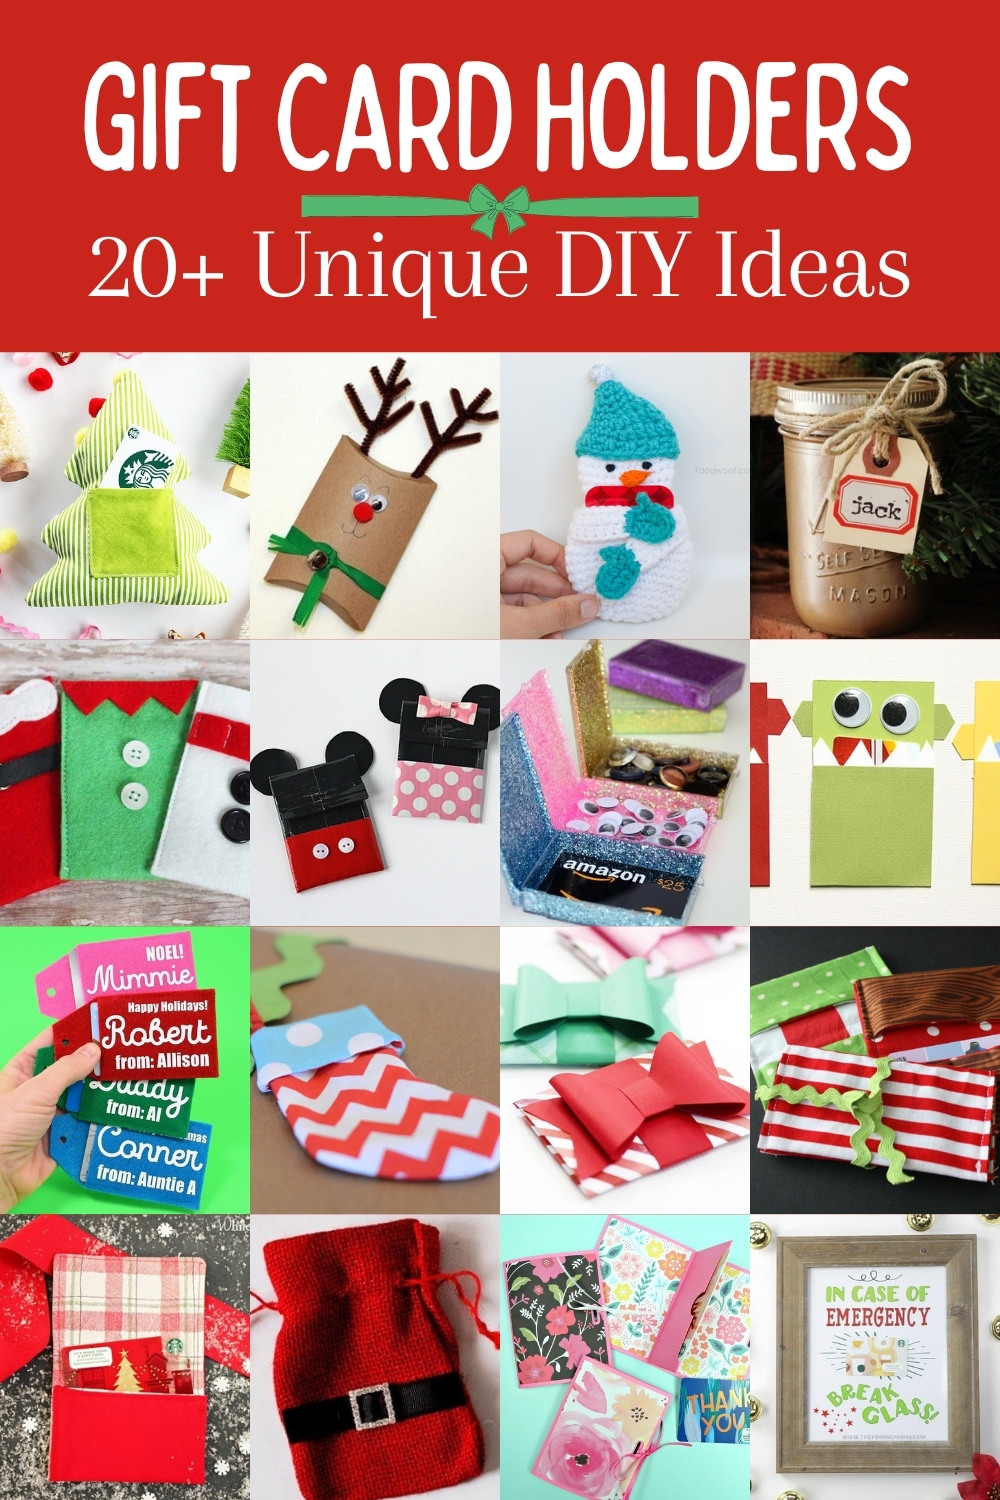 Over 20 DIY Gift Card Holders